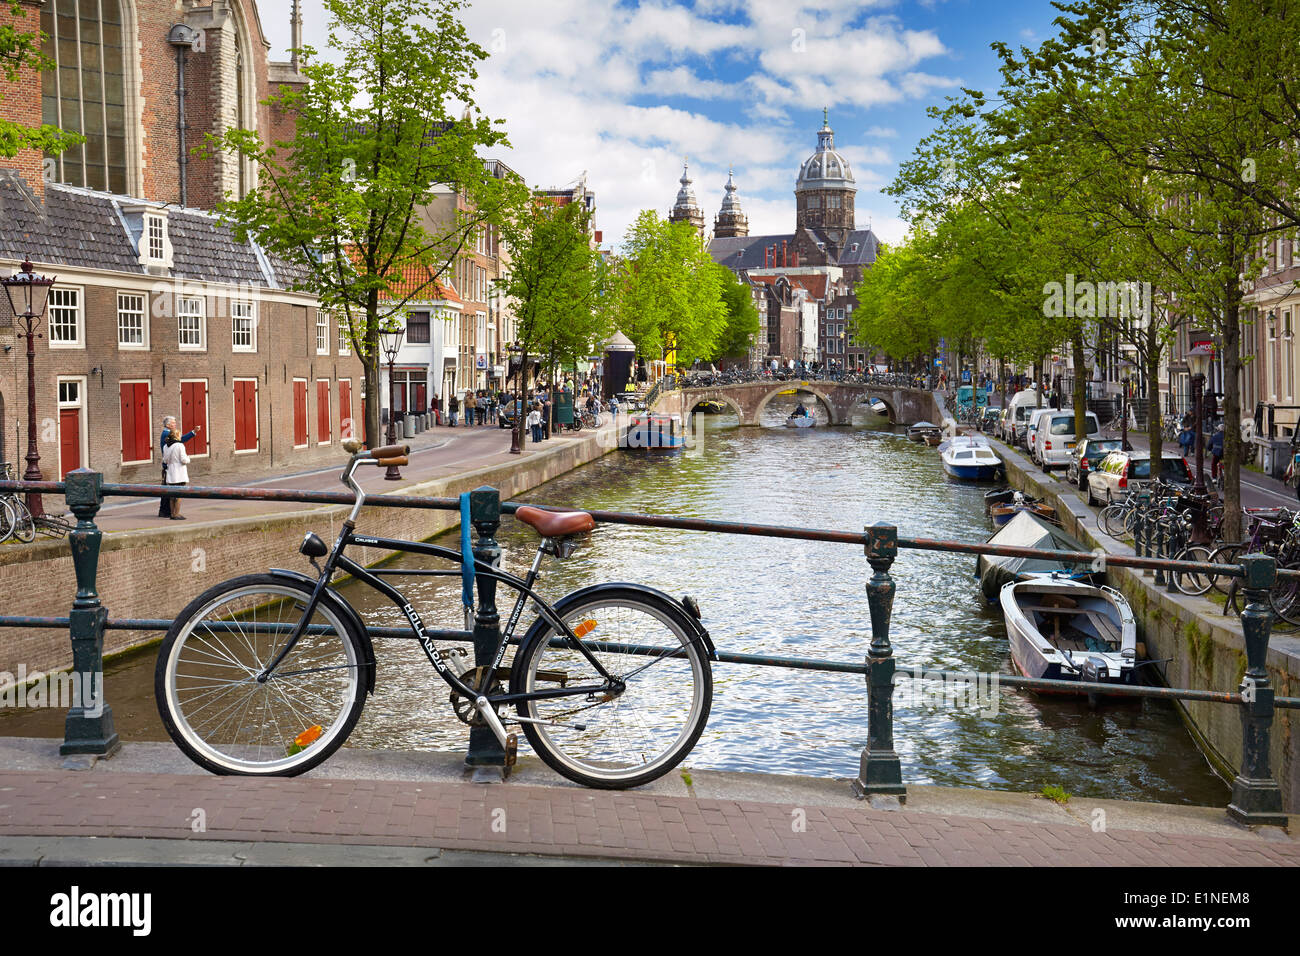 Bicycle on Amsterdam canal, Holland, Netherlands Stock Photo